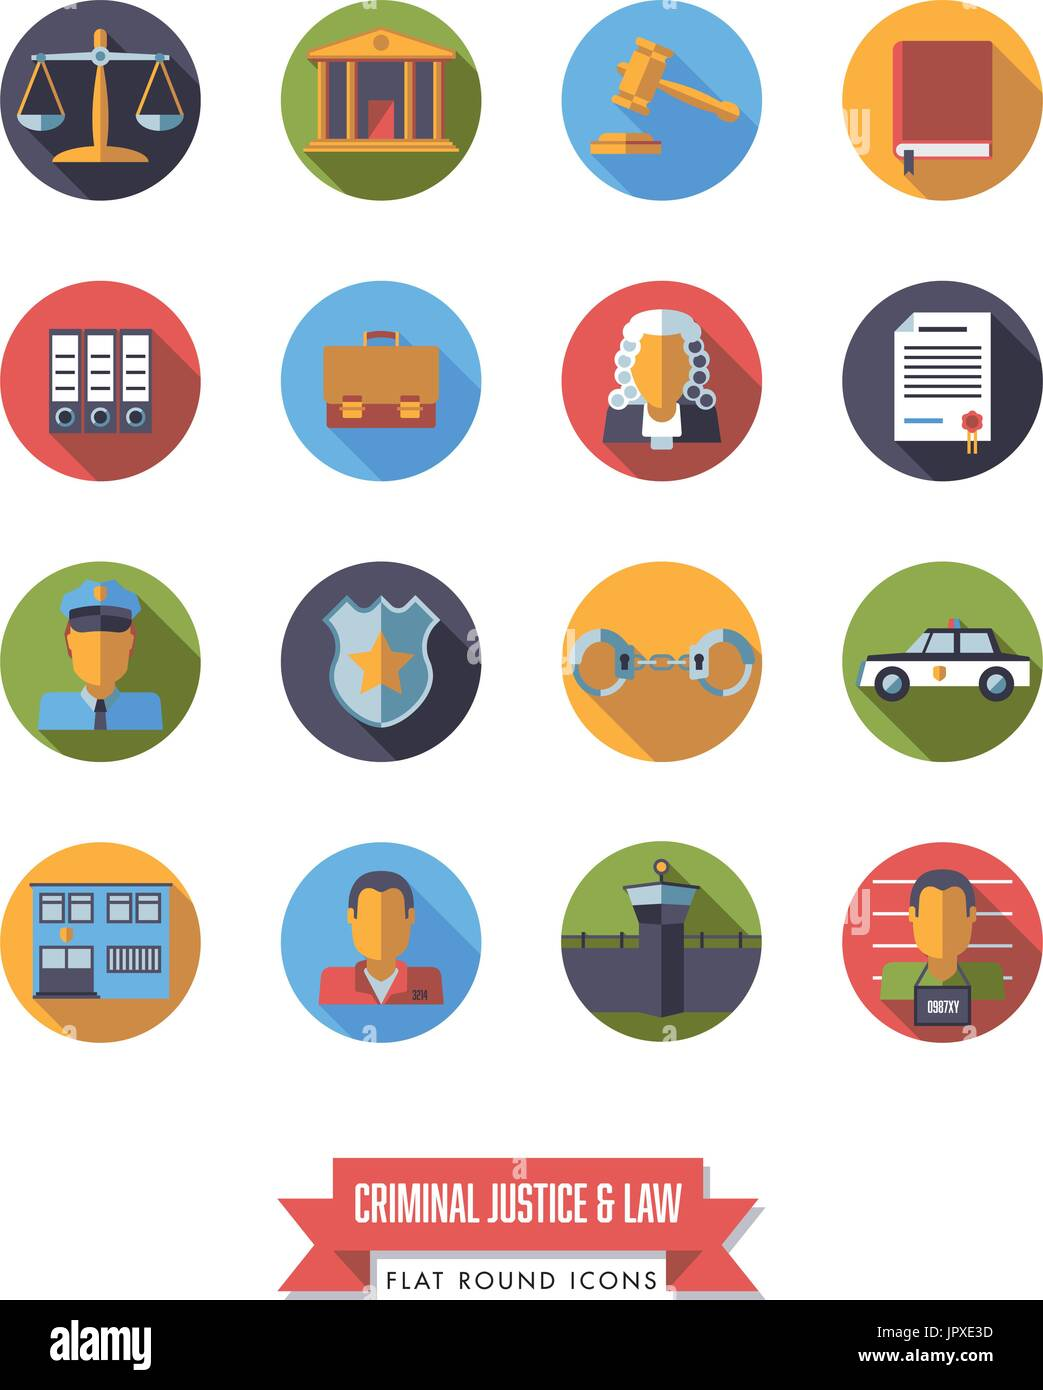 Collection of circular law and criminal justice icons. Flat design long shadow round symbols. - Stock Vector